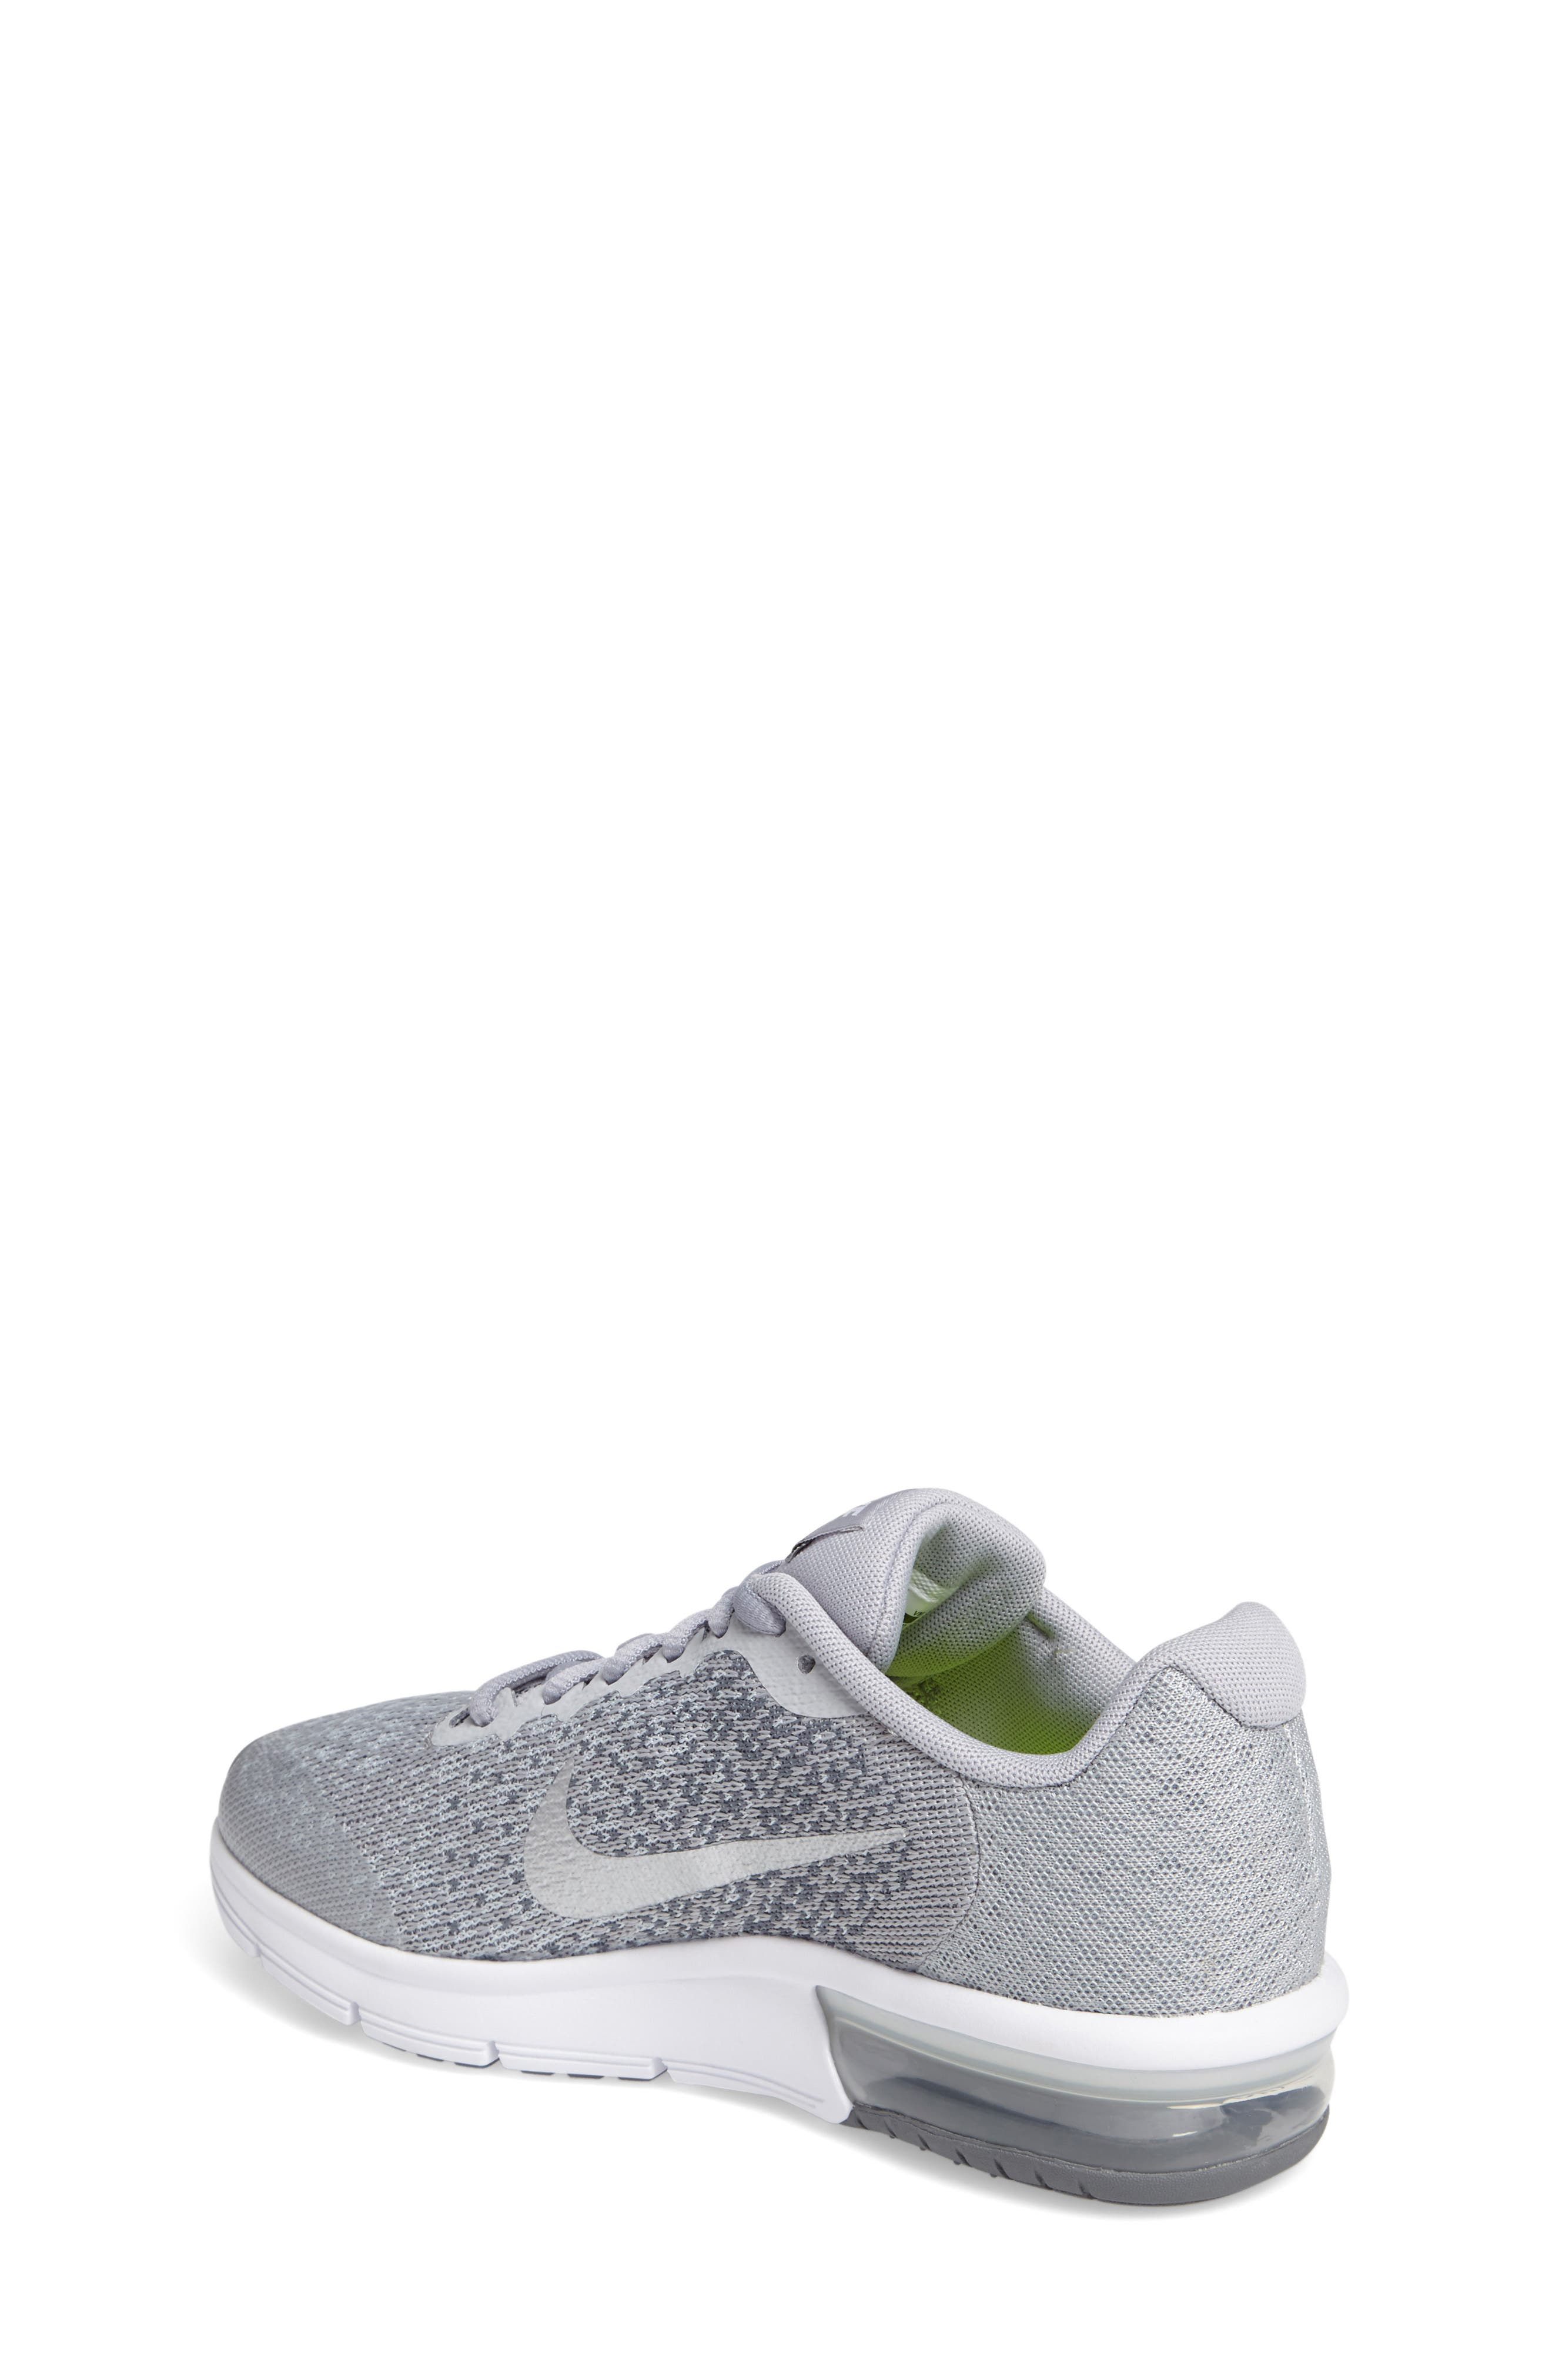 Air Max Sequent 2 Sneaker,                             Alternate thumbnail 2, color,                             020